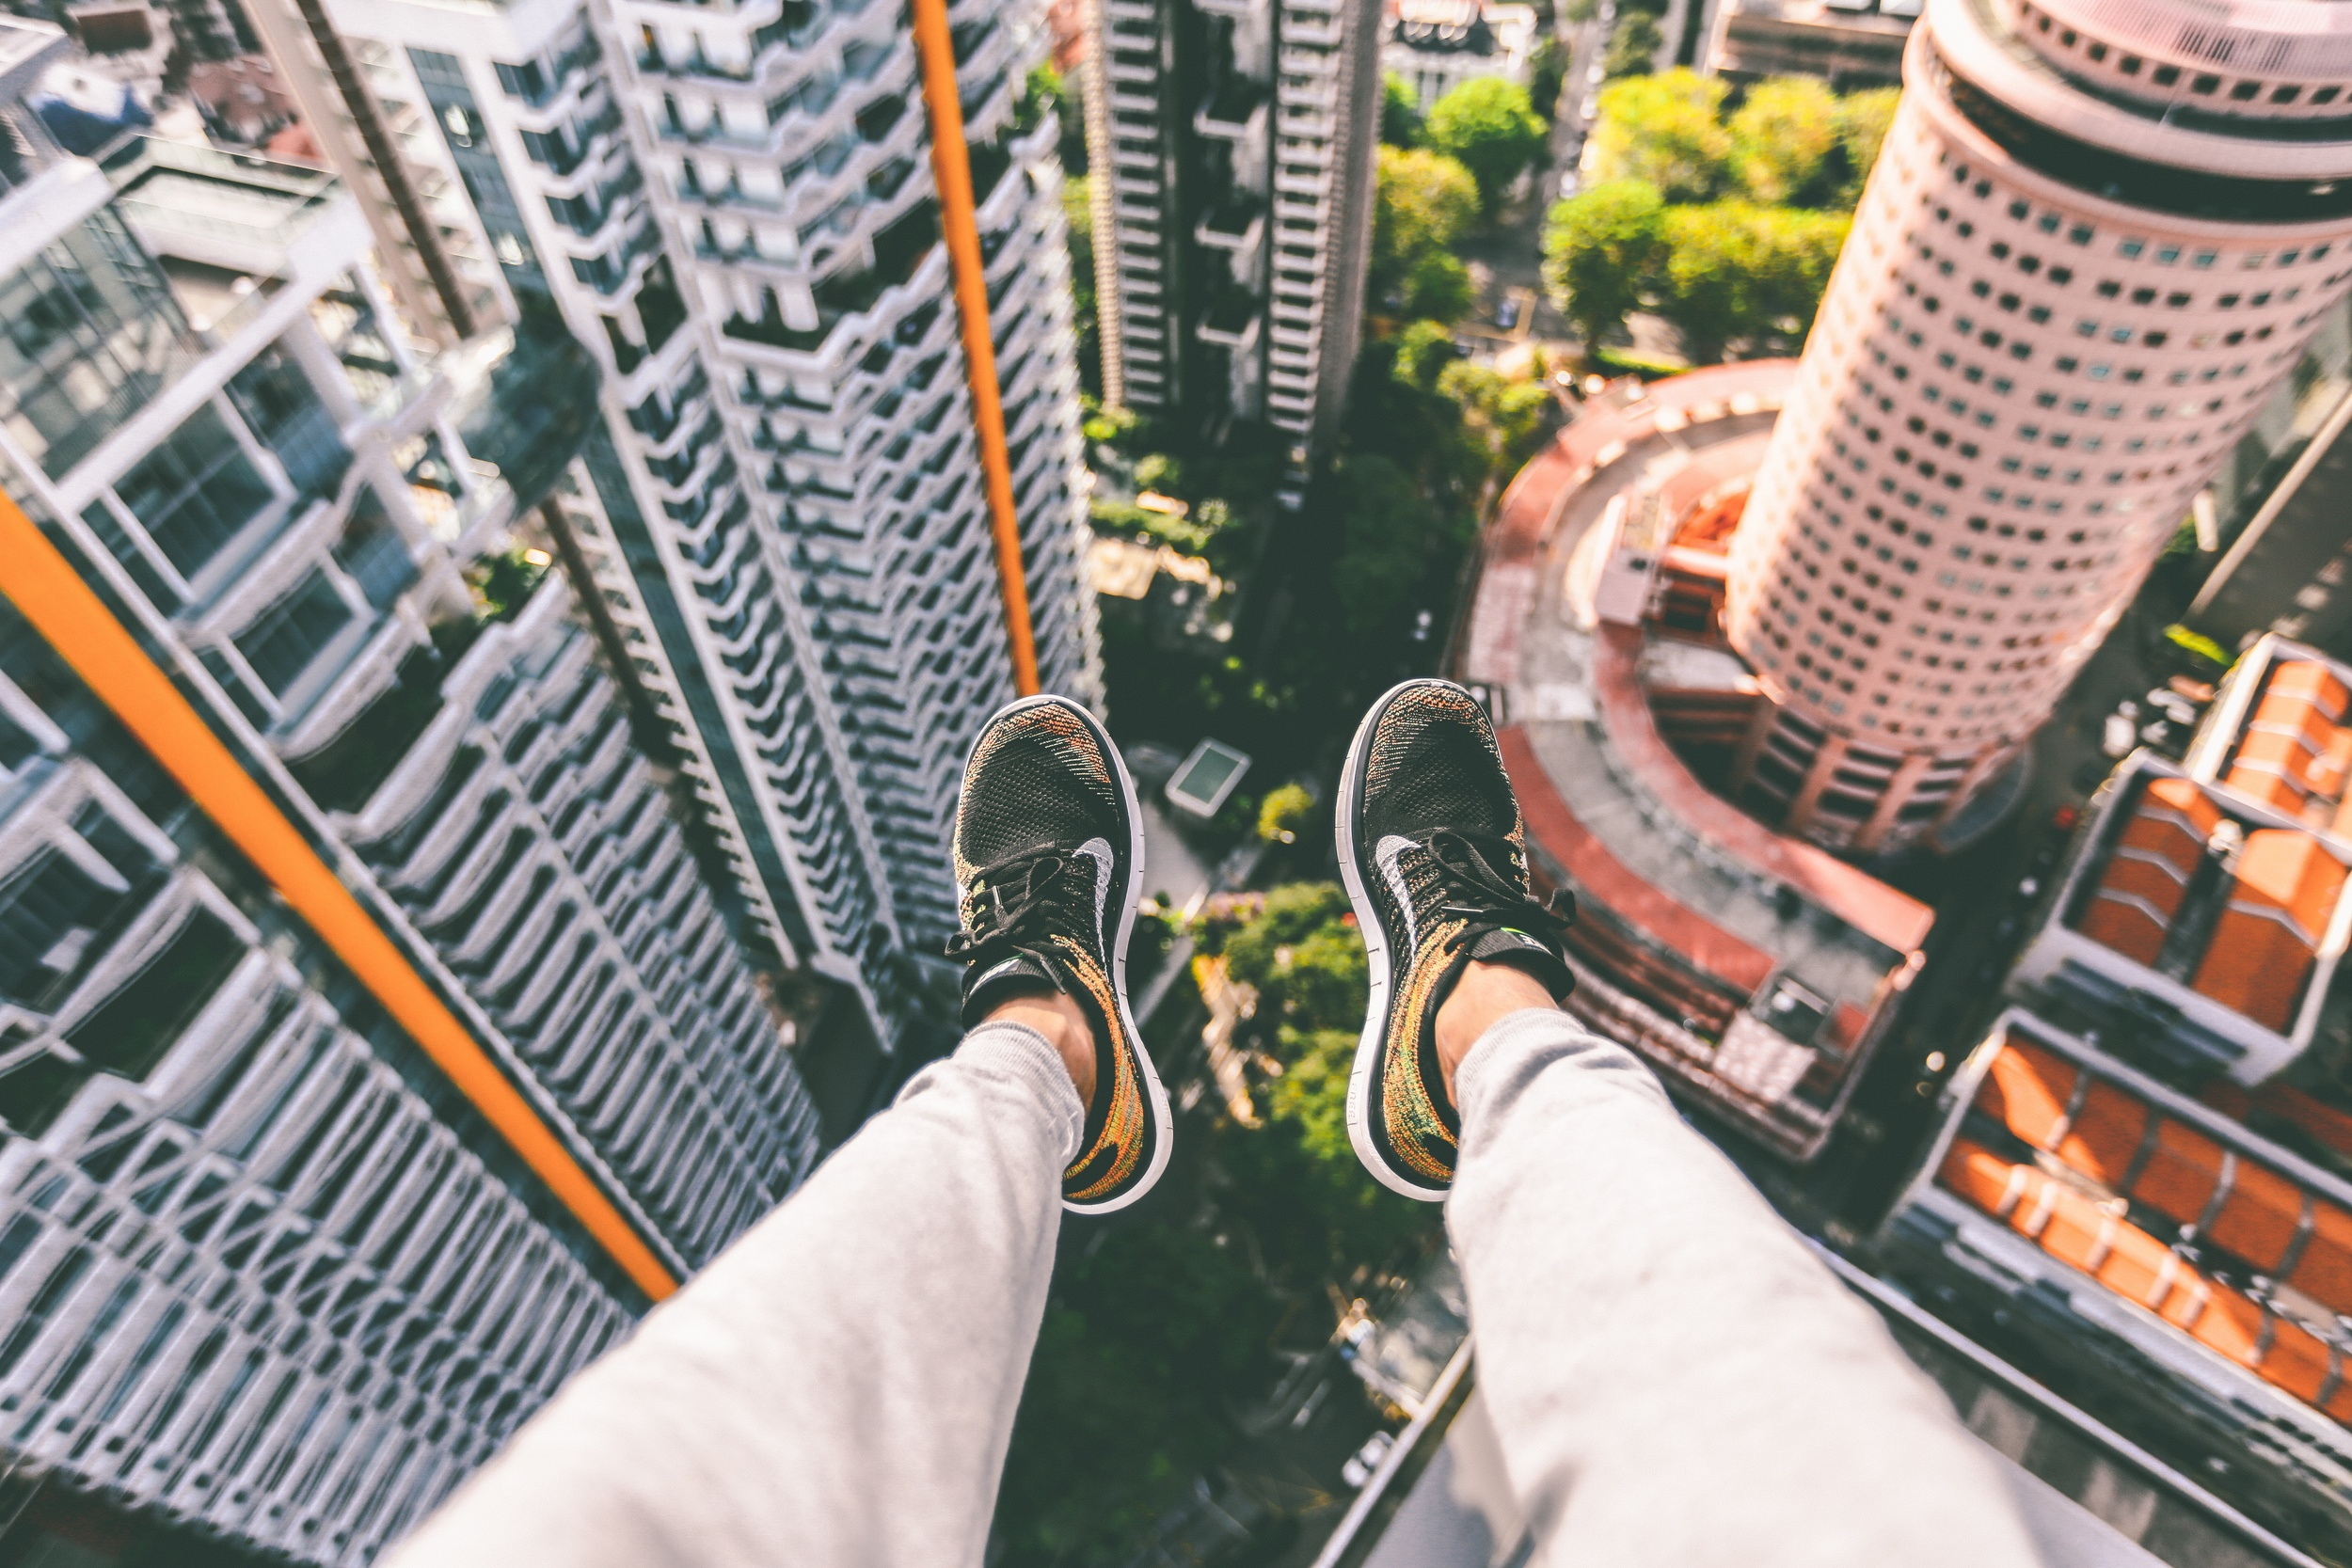 Take the leap into the unknown and embrace getting over your ex